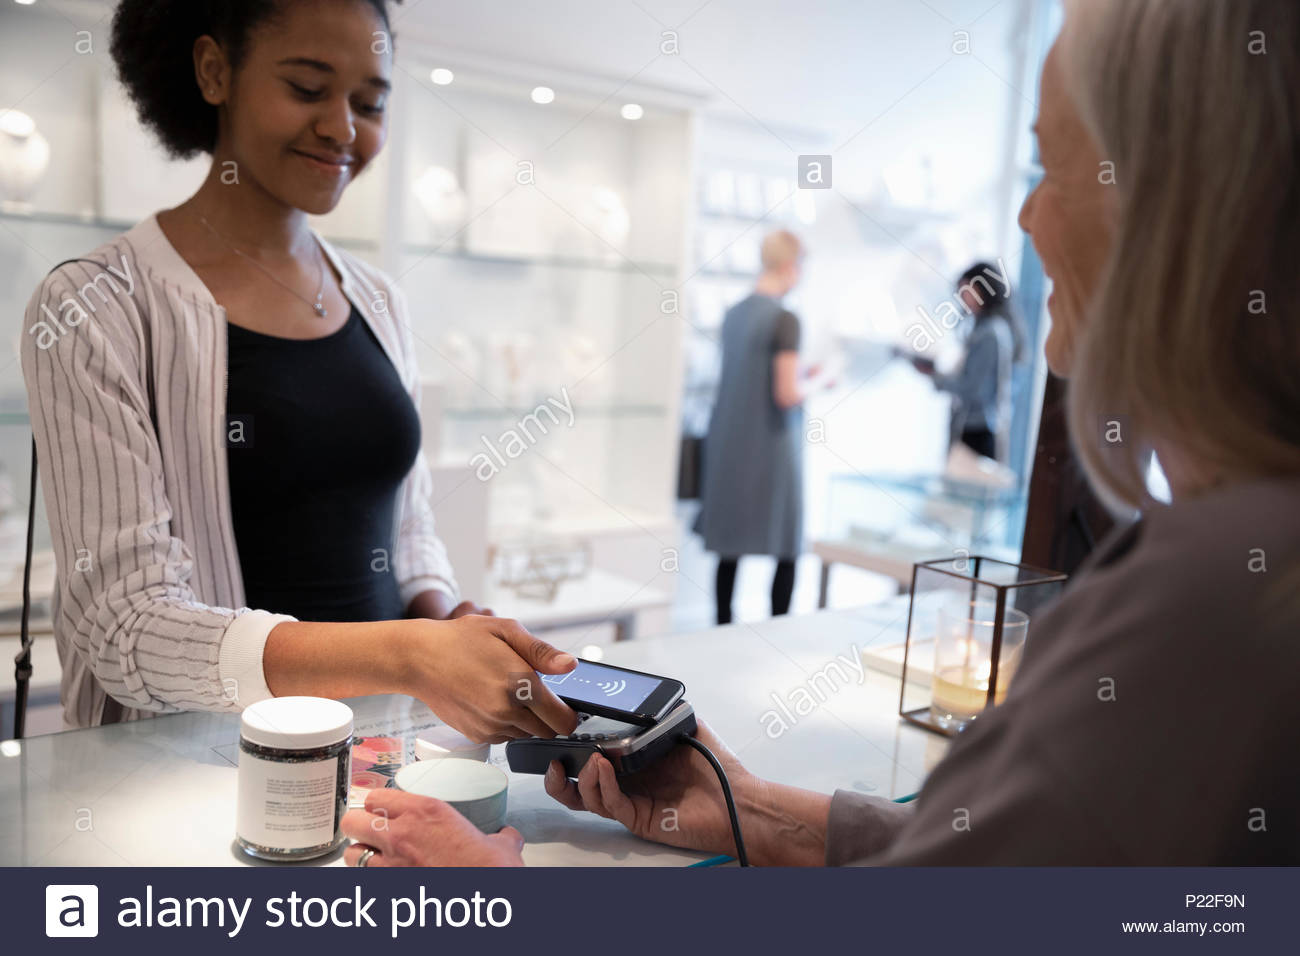 Young woman with smart phone paying with contactless payment in boutique - Stock Image